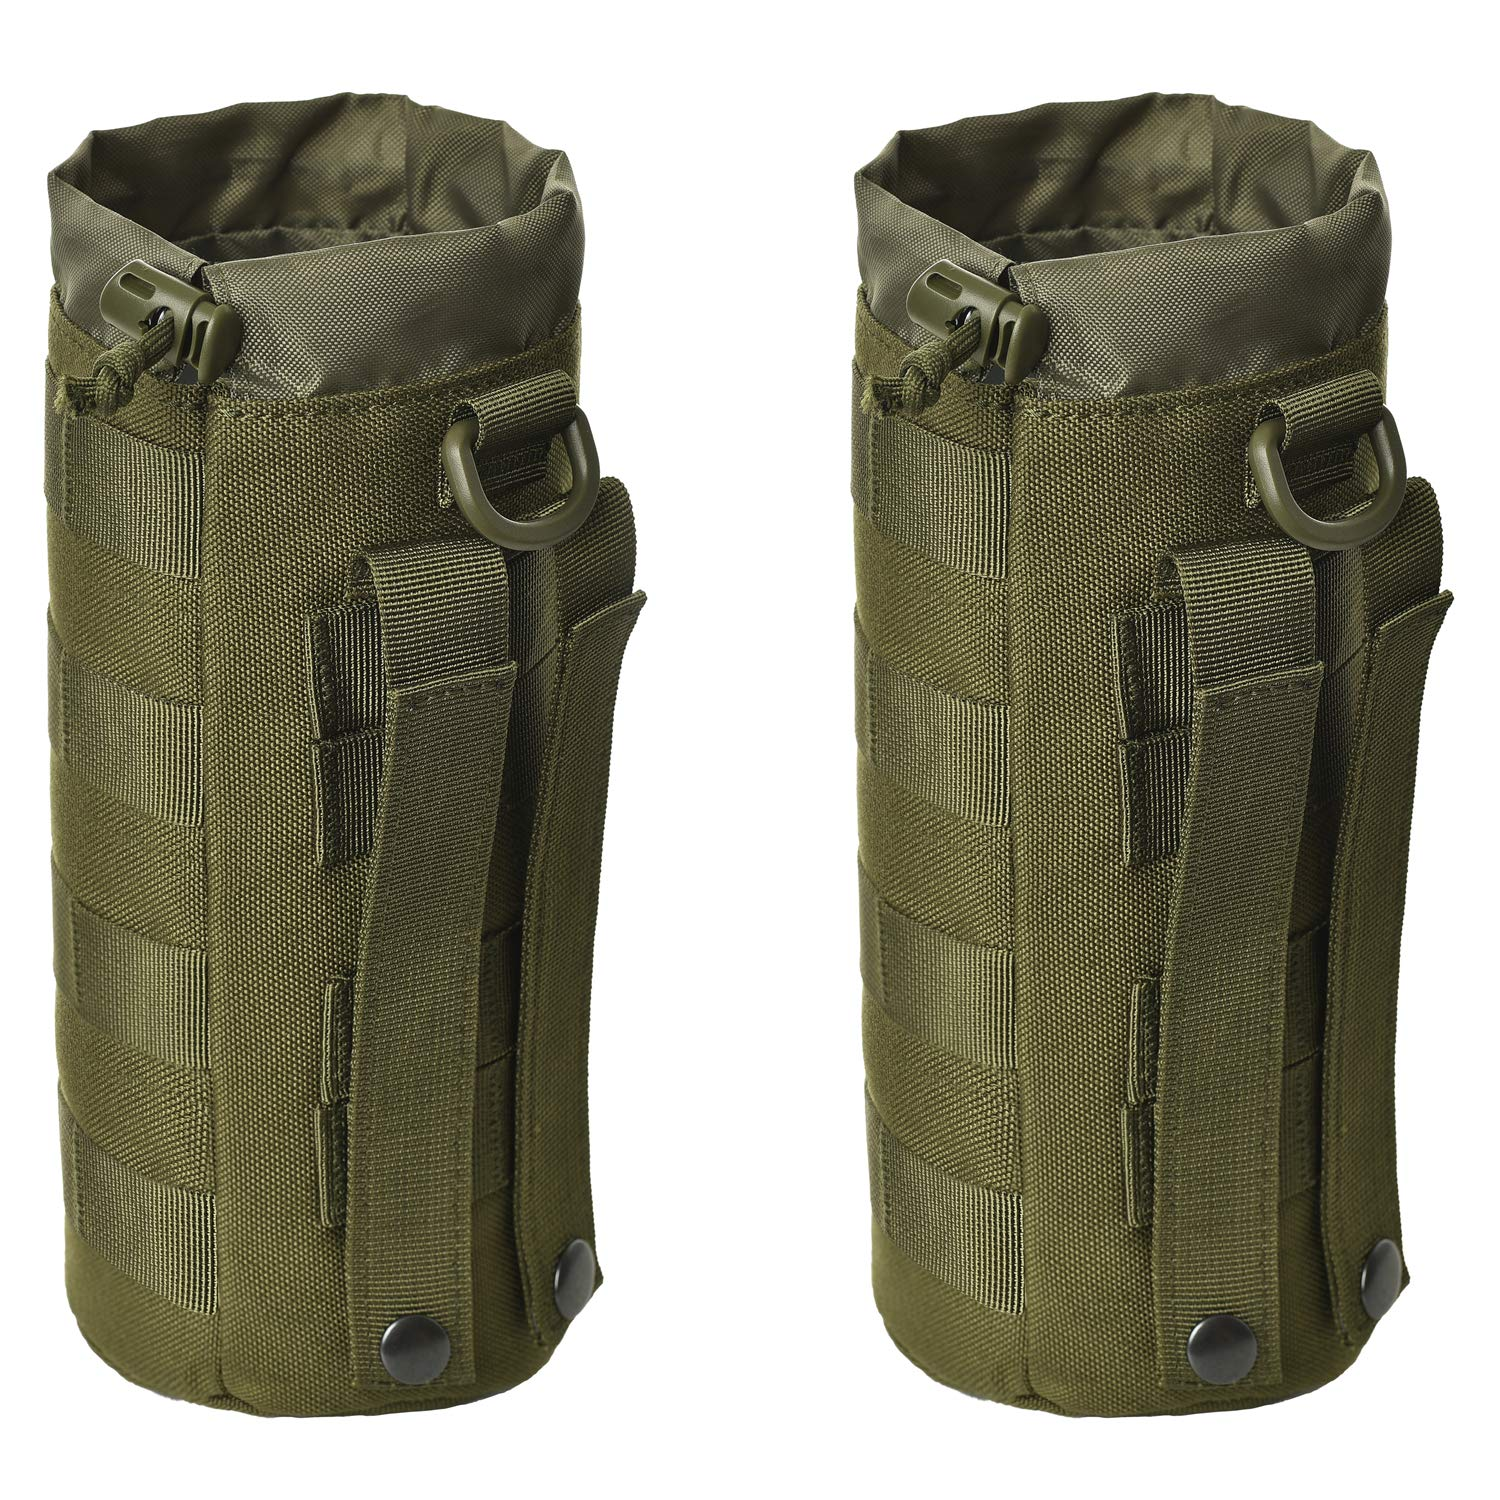 GZSAIPASI 2 Pack Water Bottles Pouch Bag Tactical Molle Water Bottle Pouch Military Drawstring Water Bottle Holder Water Bottle Carrier